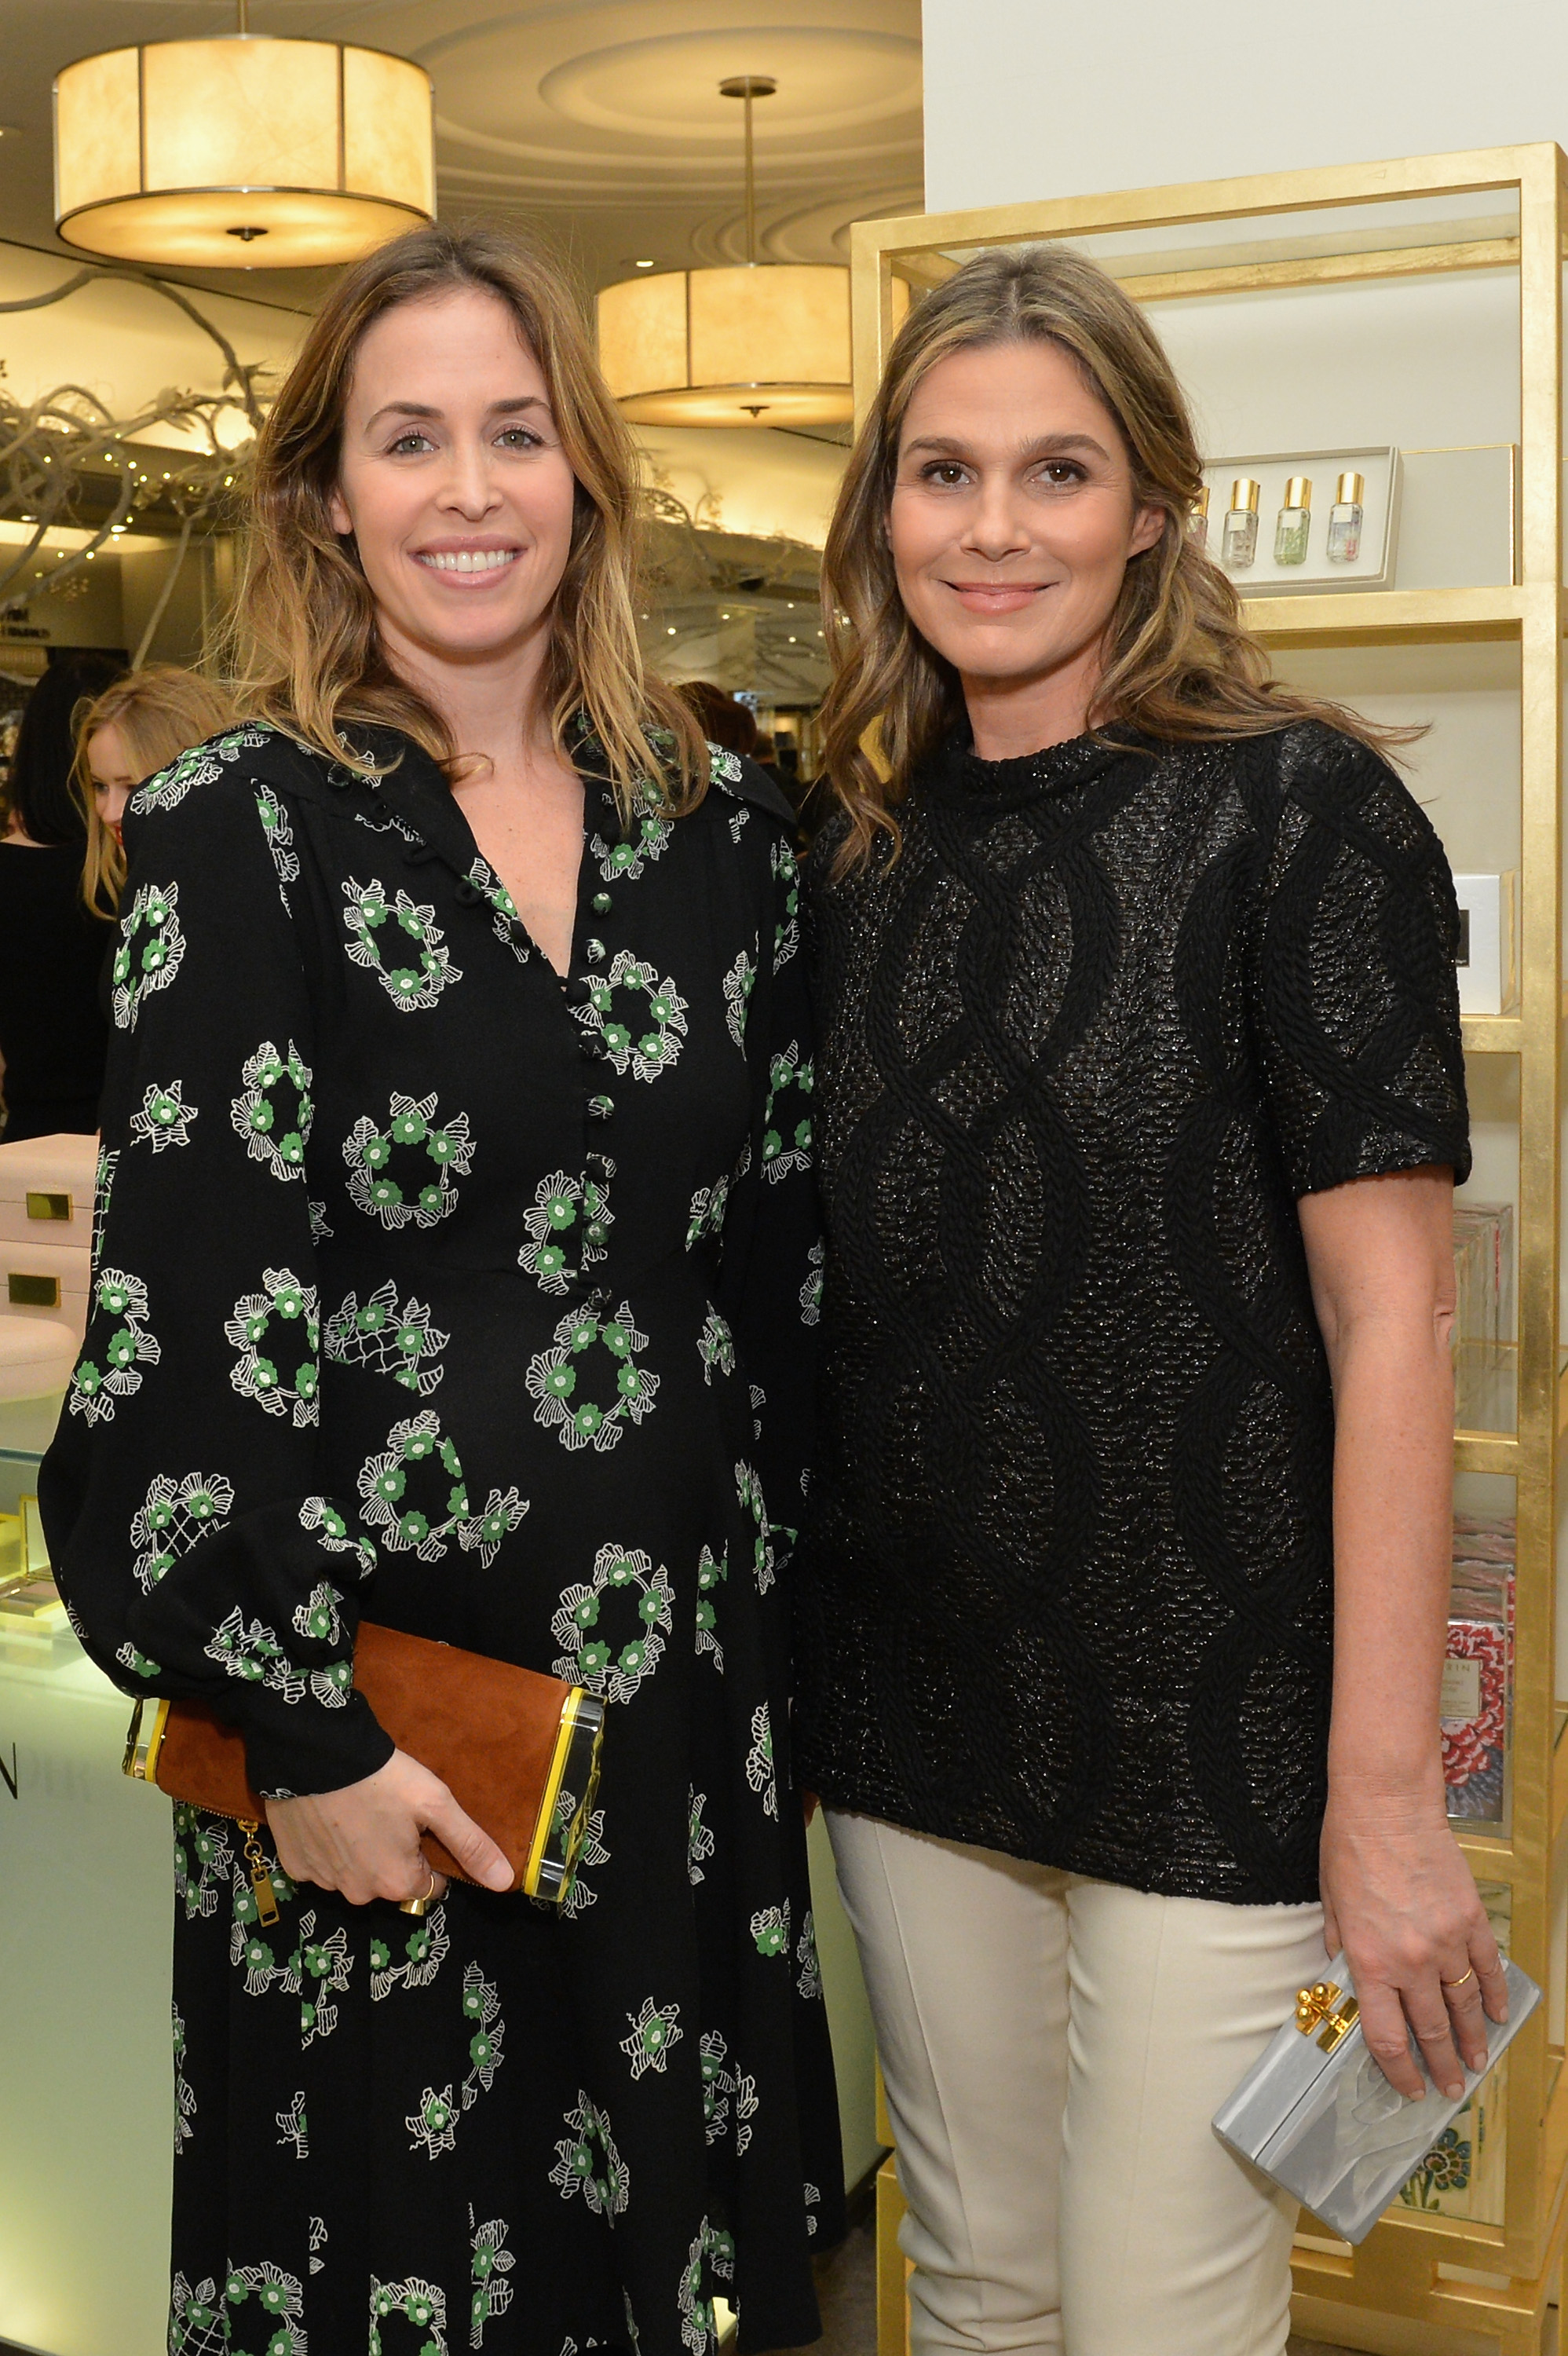 45c93890f5ad Bags and Beauty  A Night with Aerin Lauder and Edie Parker - Daily ...